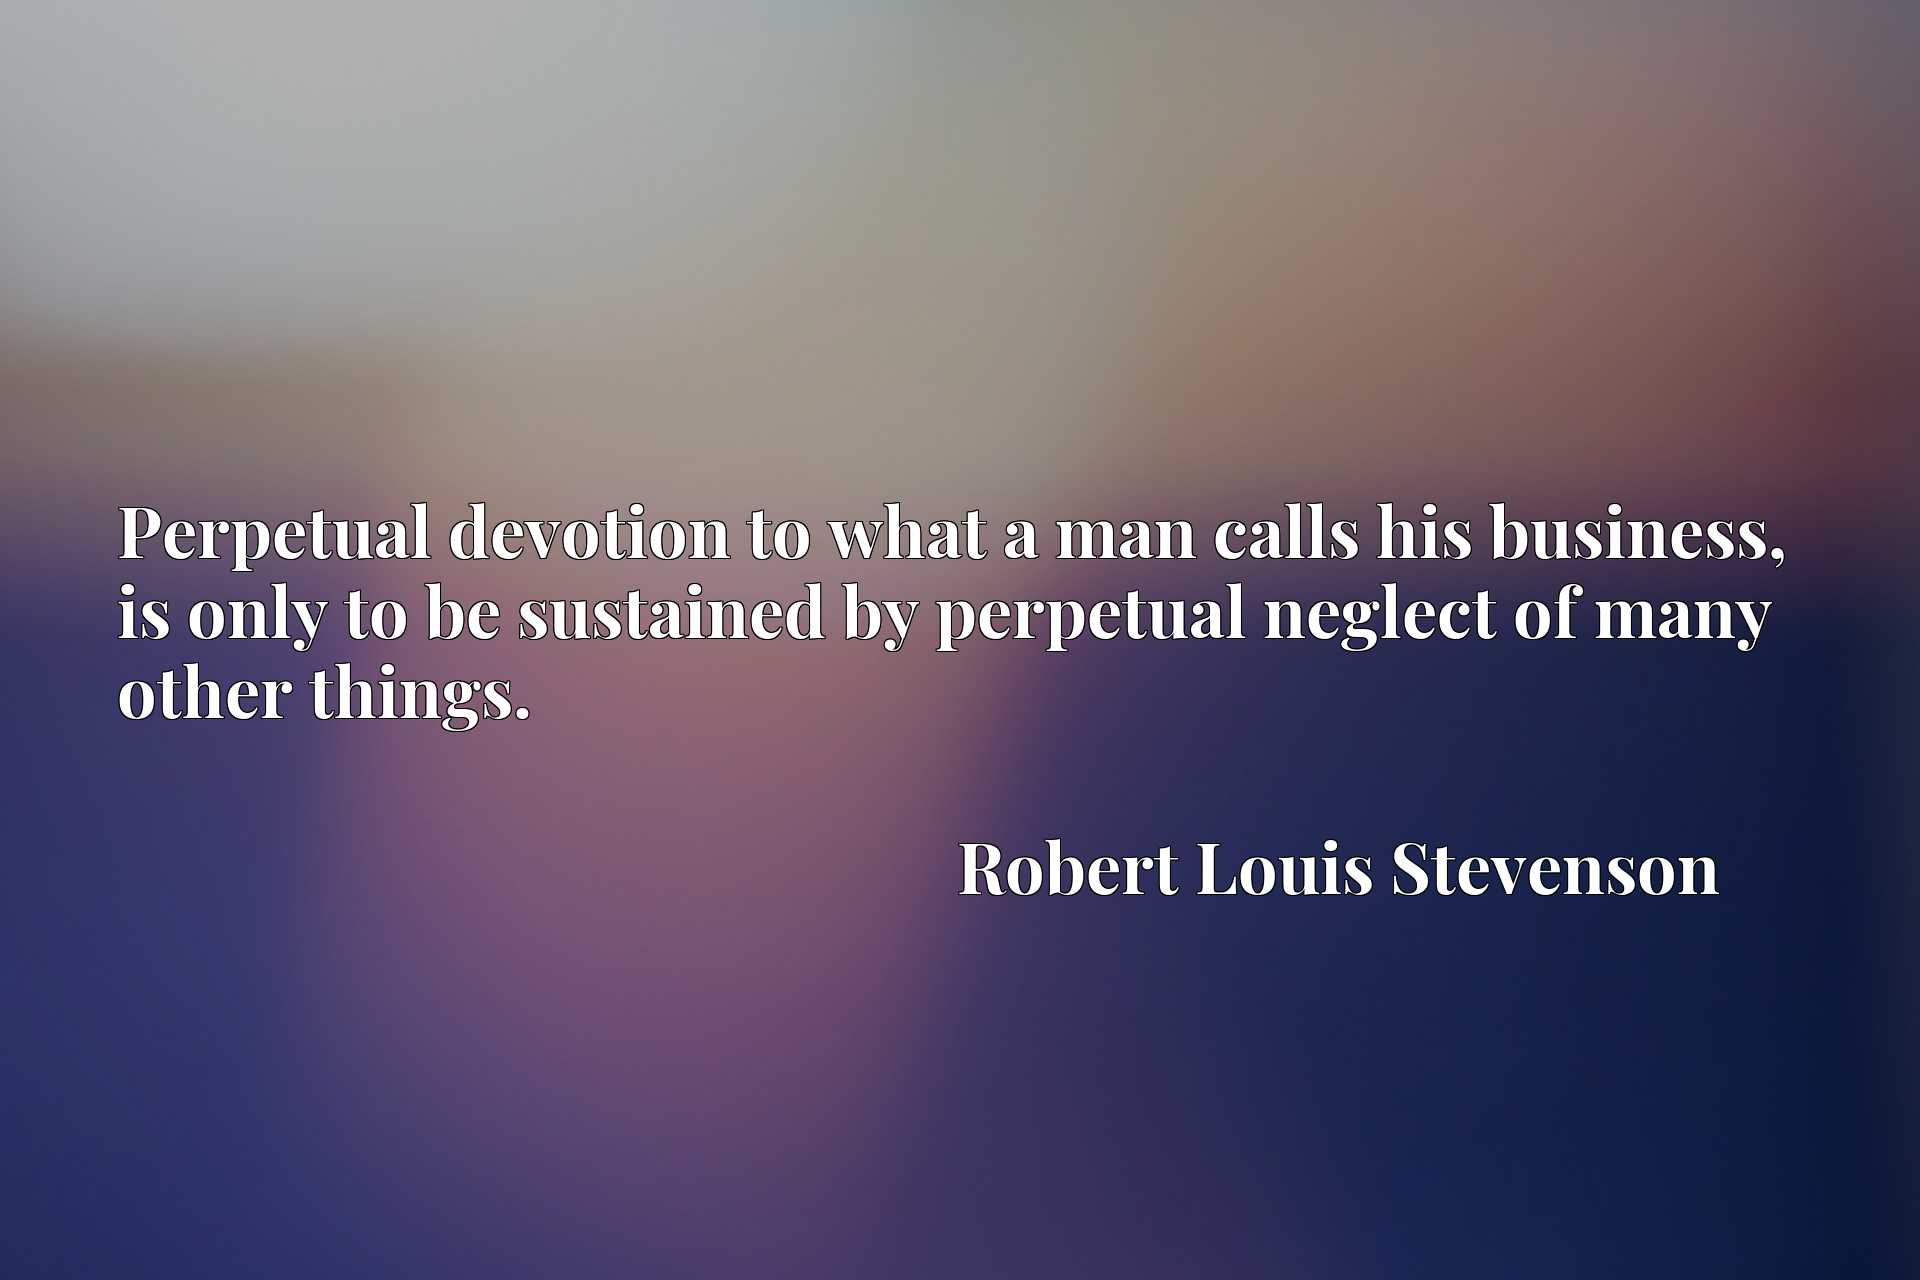 Perpetual devotion to what a man calls his business, is only to be sustained by perpetual neglect of many other things.